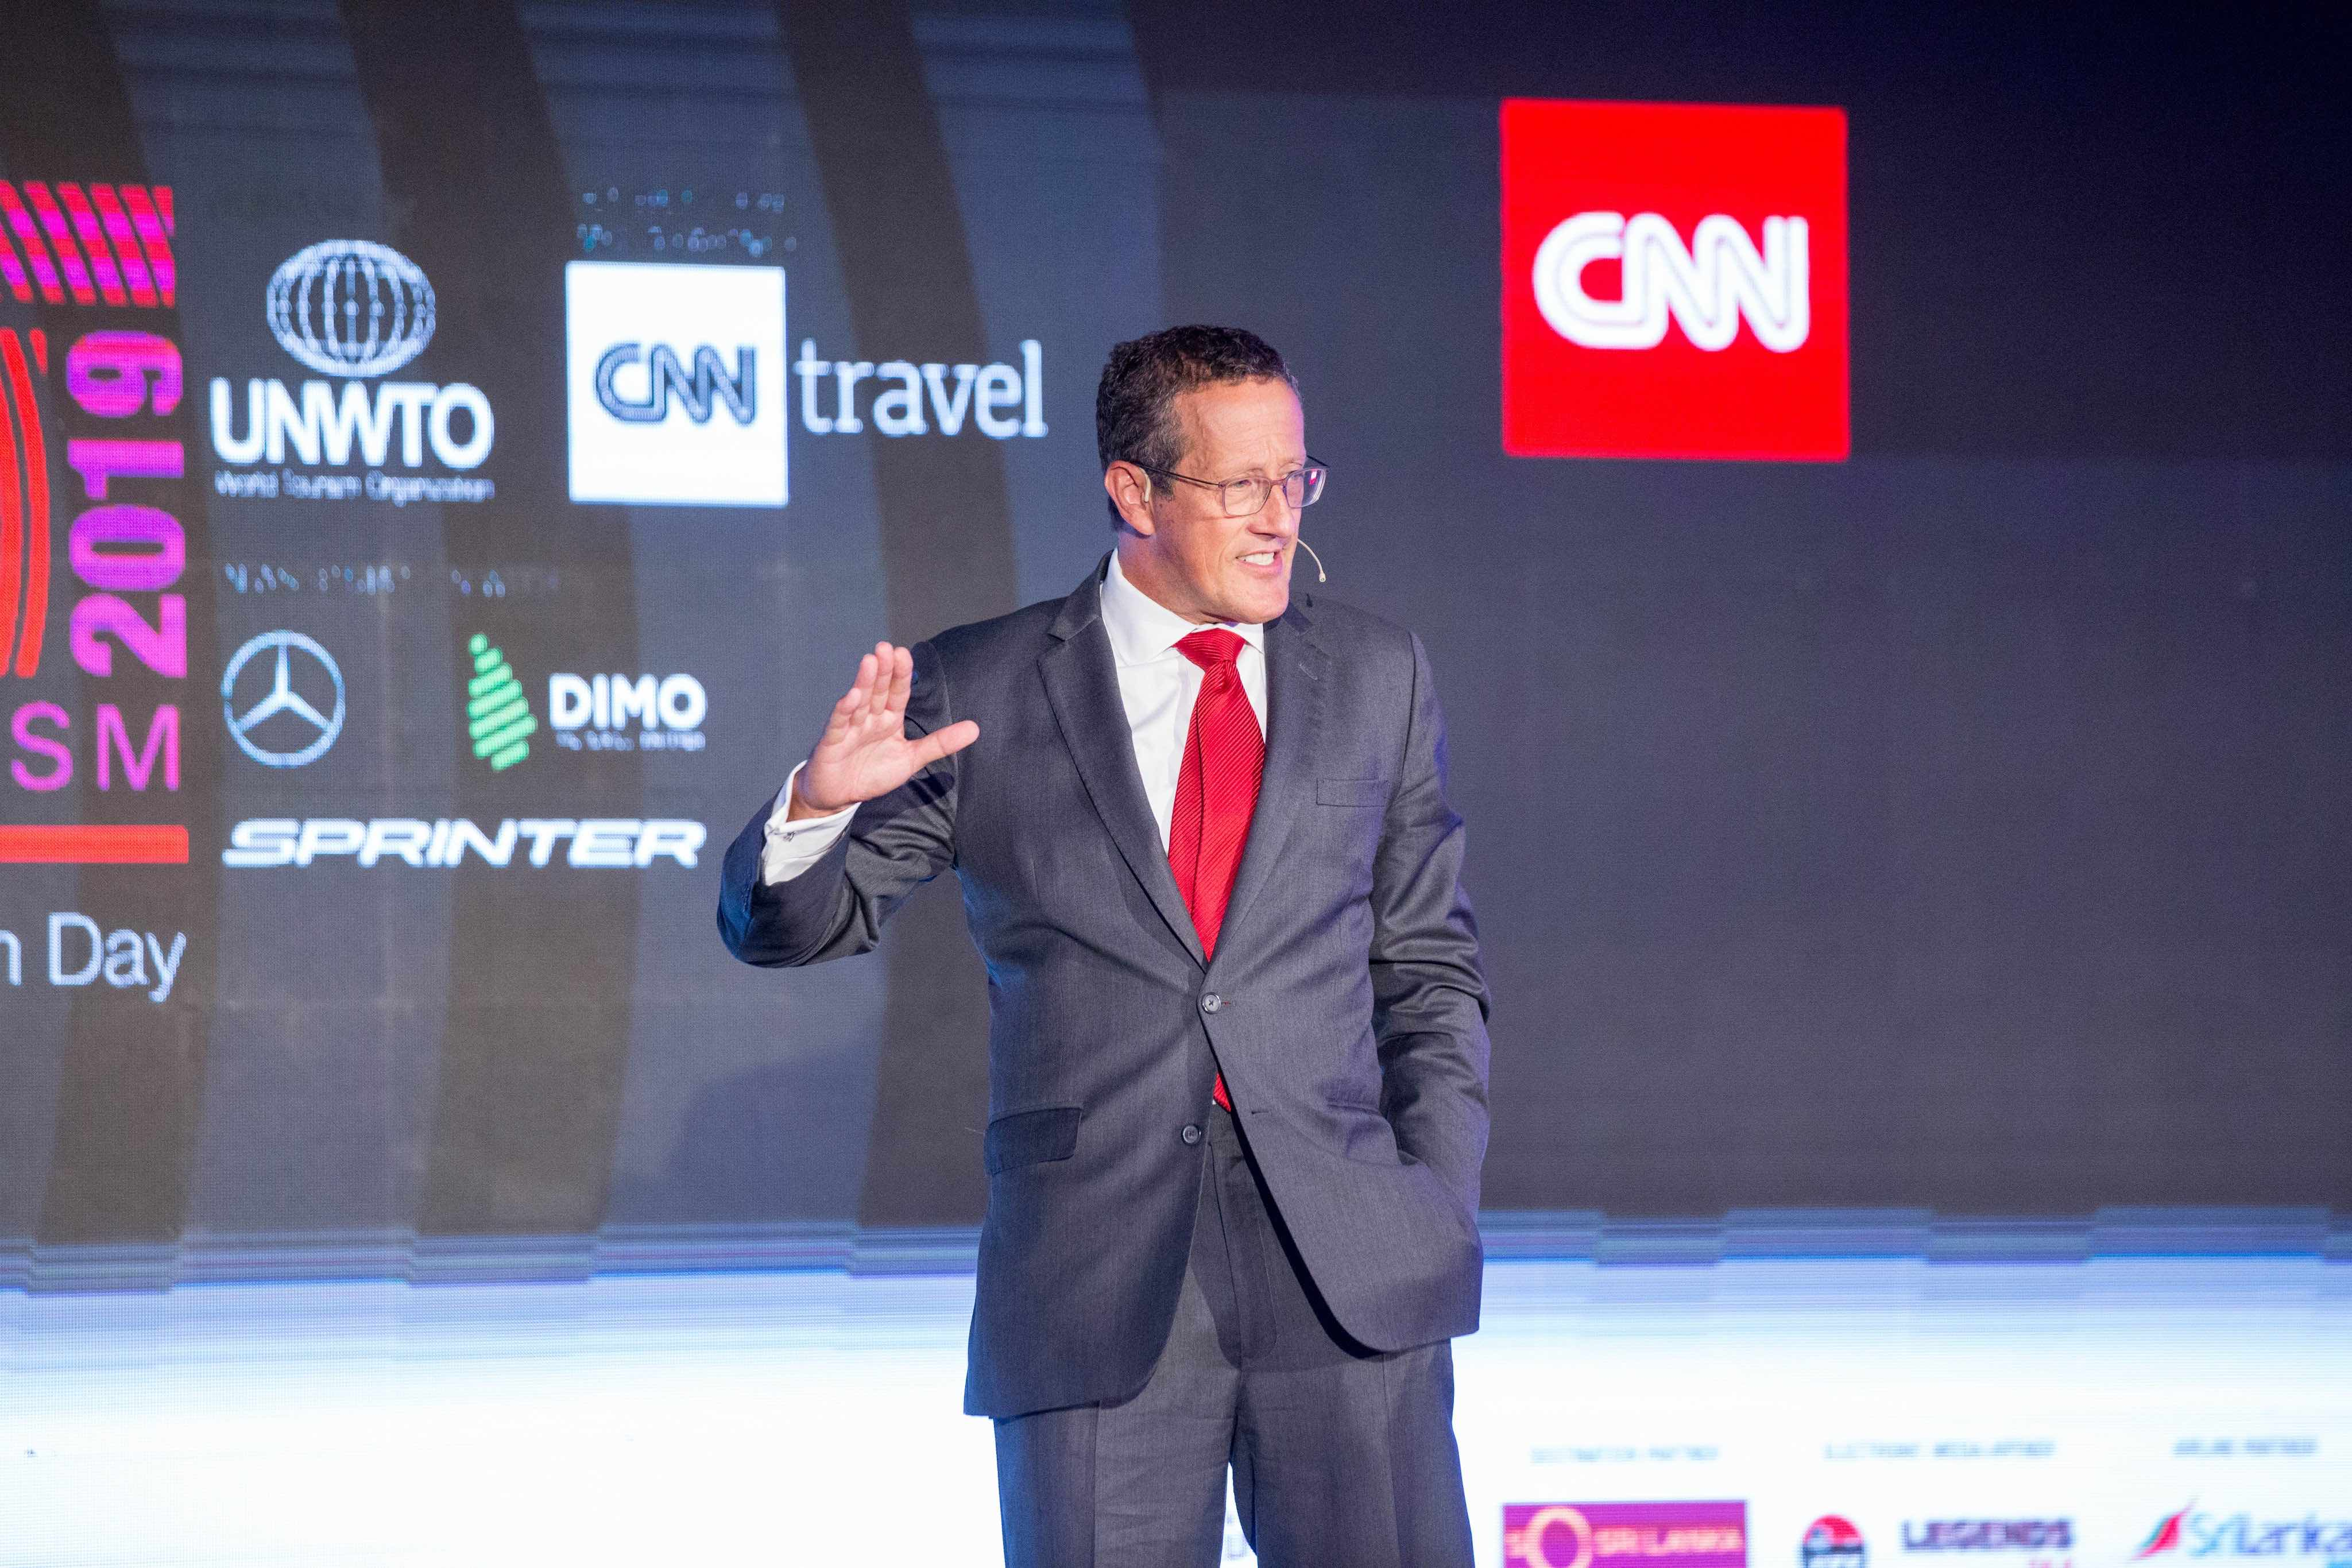 Video: CNN's Richard Quest on Sri Lanka's Future of Tourism